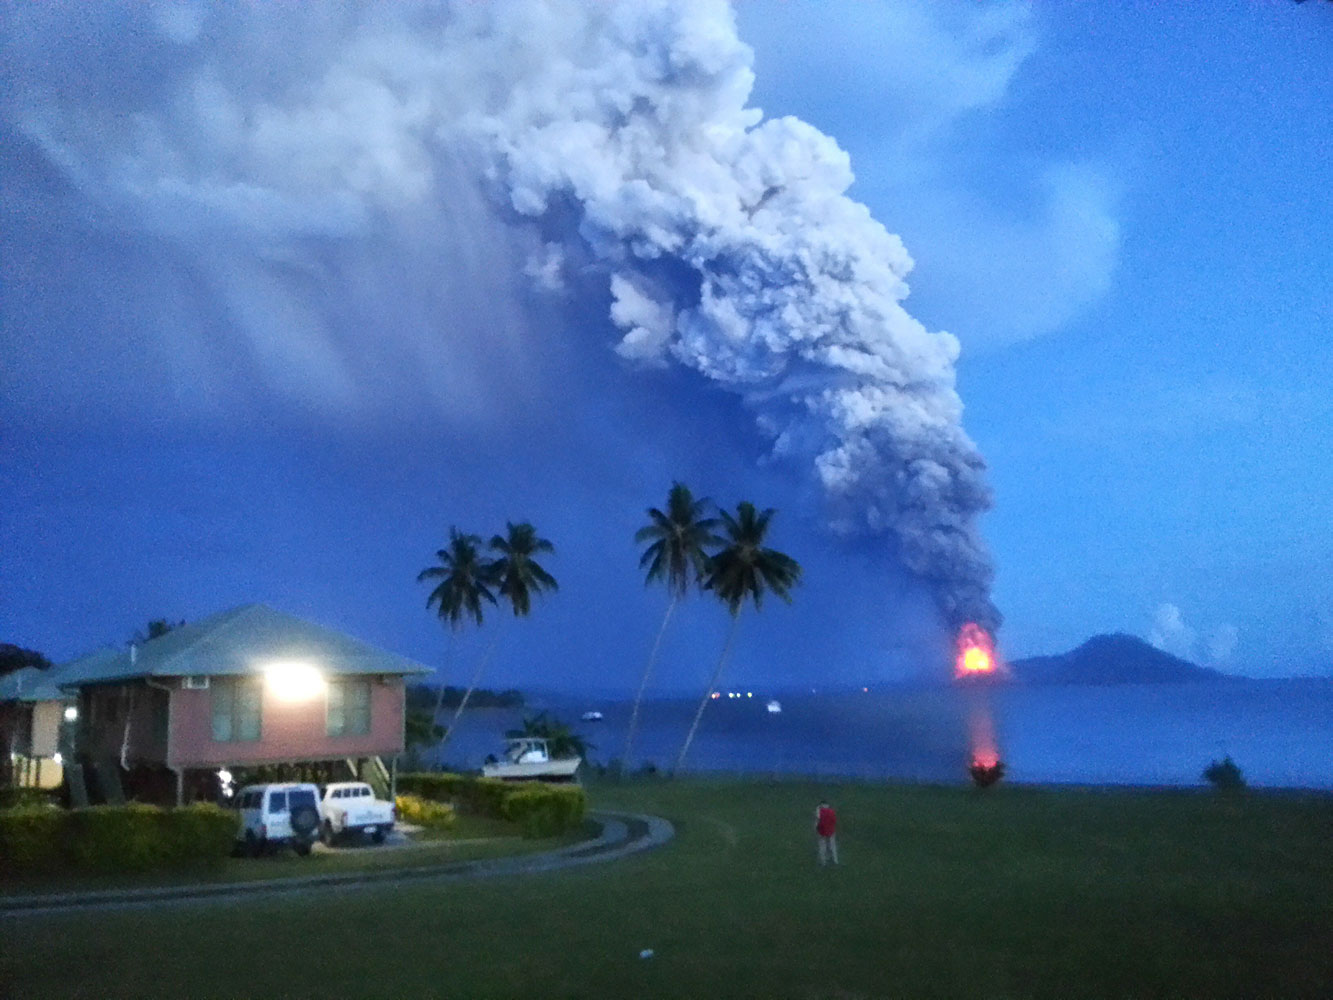 A photo taken on August 29, 2014, shows Mount Tavurvur erupting in eastern Papua New Guinea, spewing rocks and ash into the air, forcing the evacuation of local communities and international flights to be re-routed.